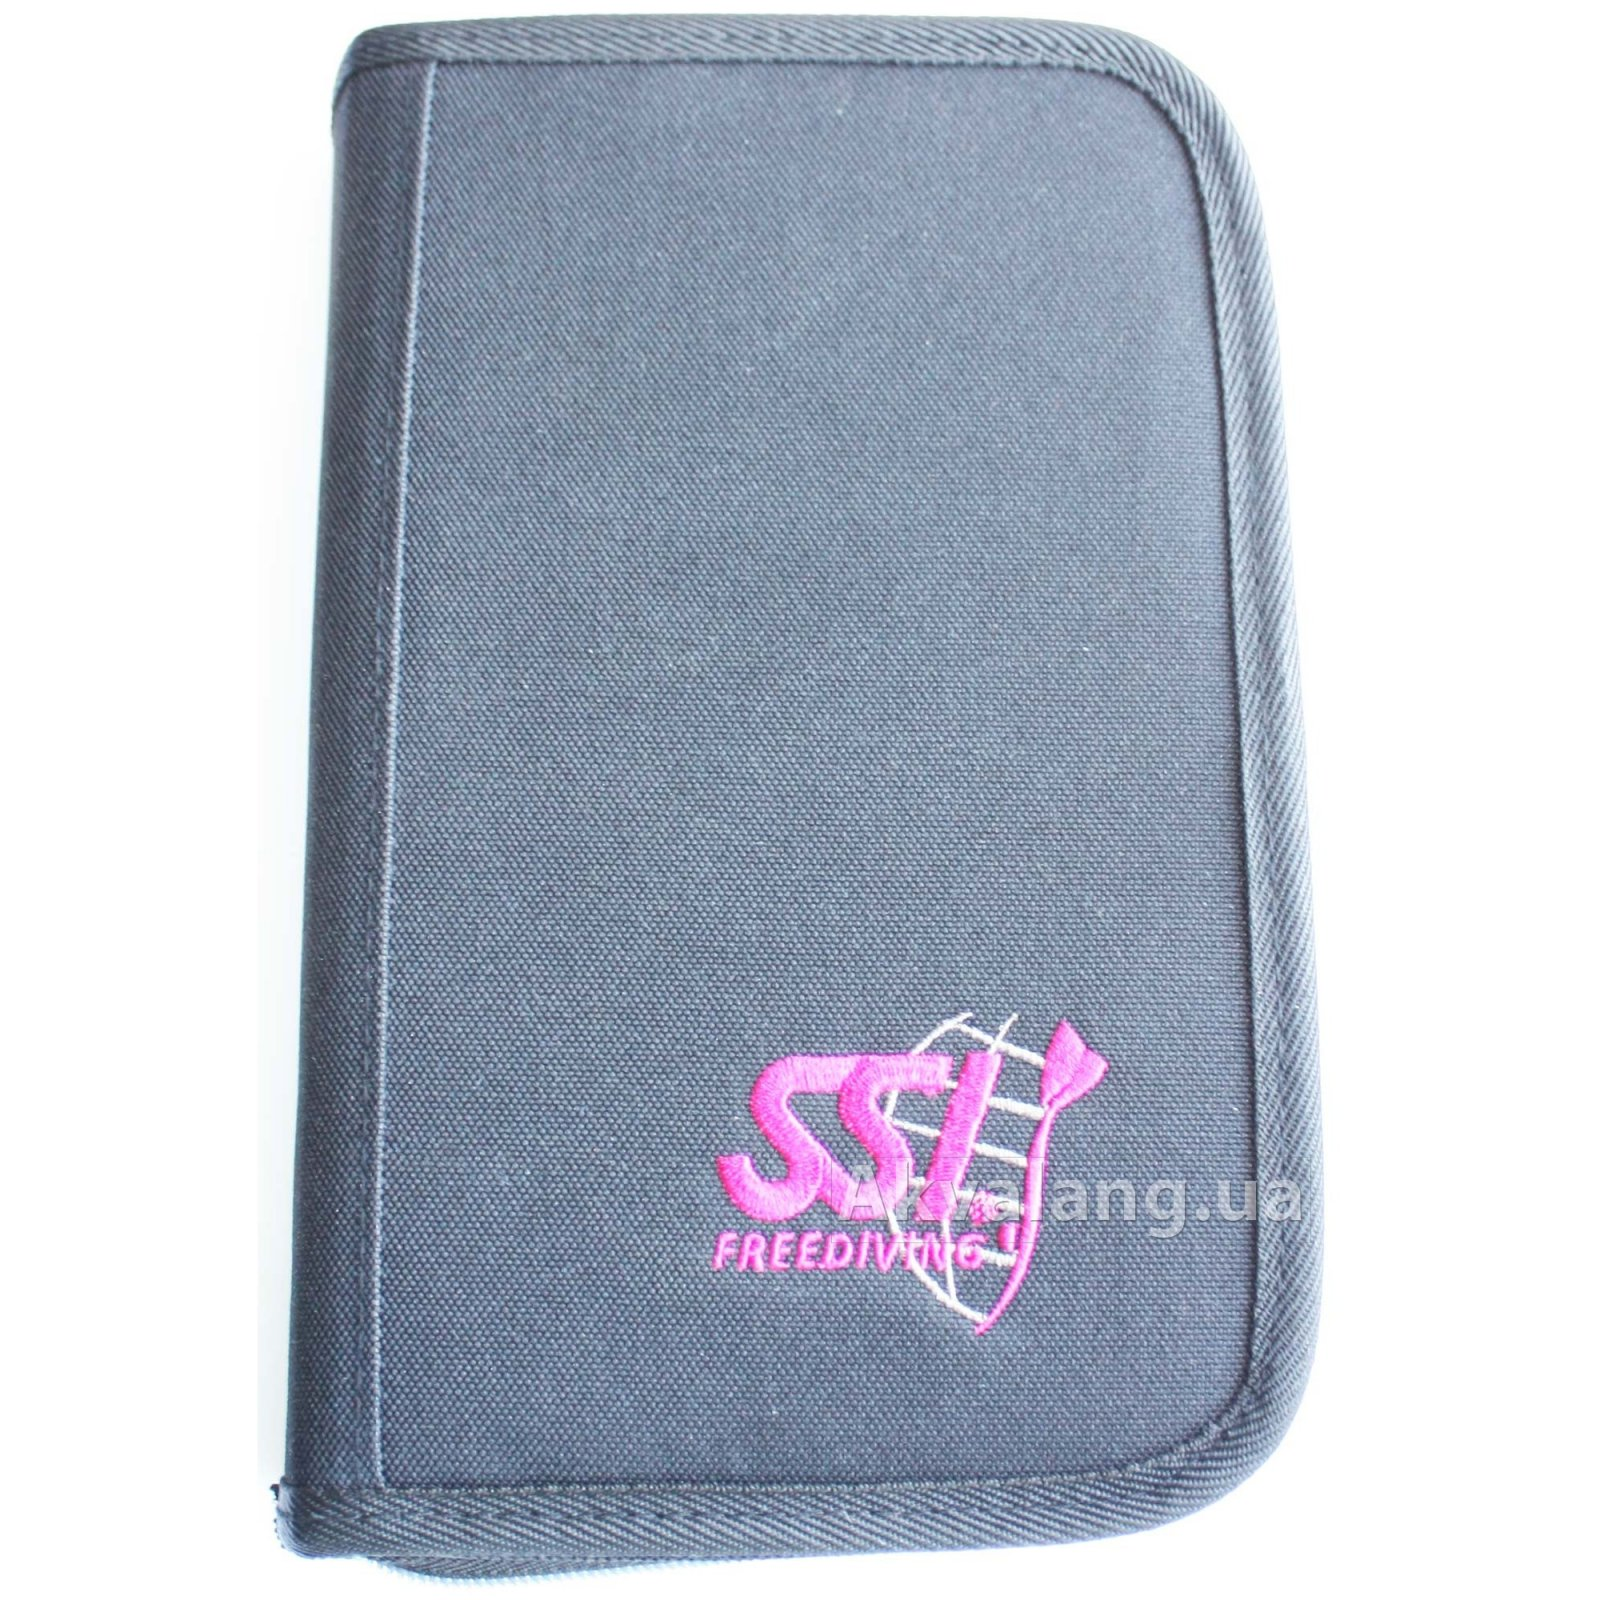 SSI Freediving Dive Log Zip Binder Black